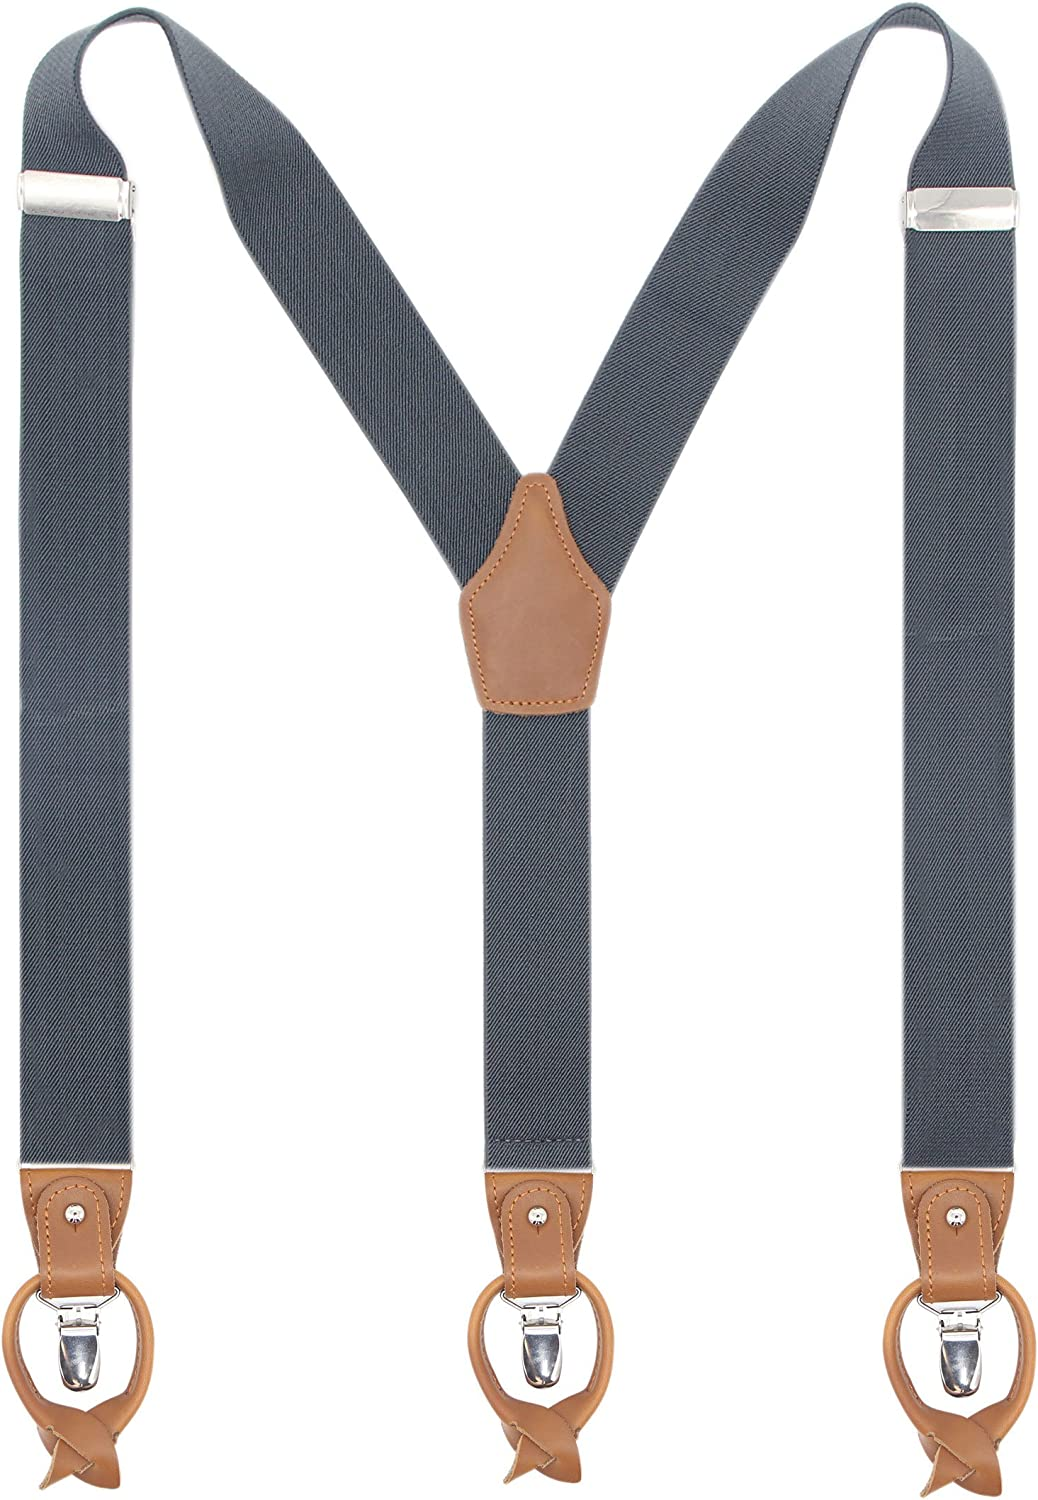 Leather Clip And Button Suspenders For Men, Y-Back Style For Formal Outfits